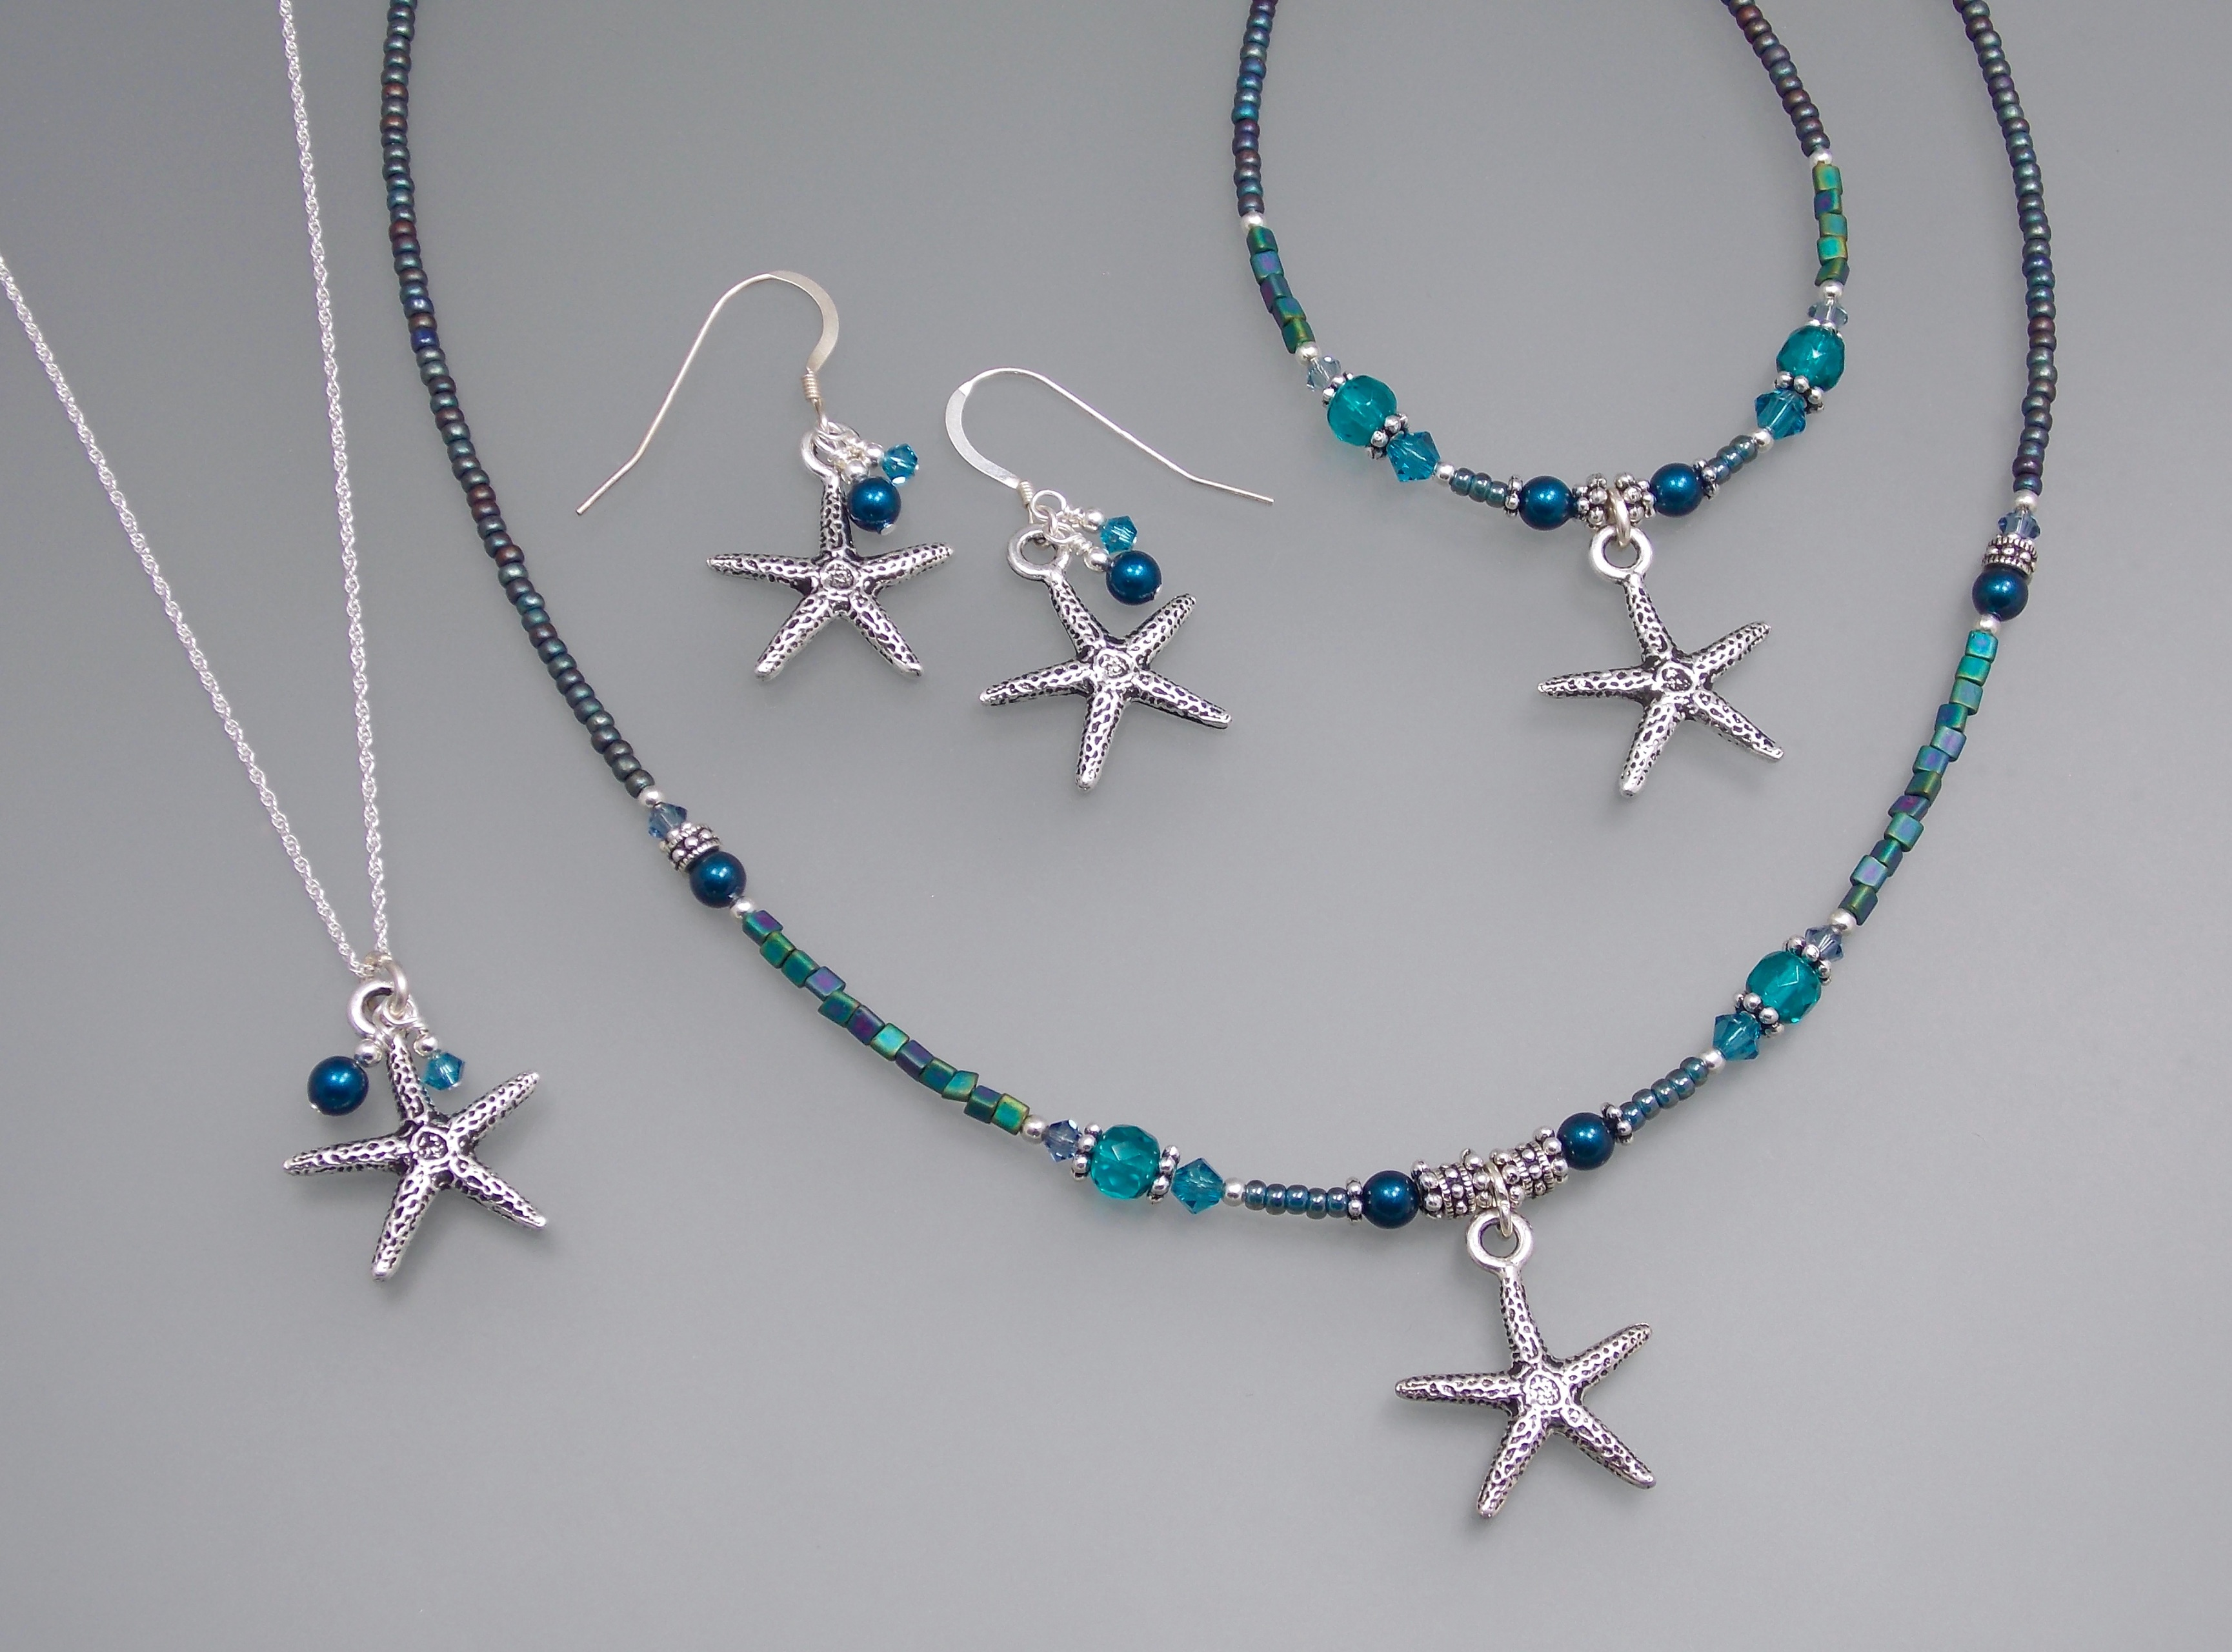 Star Necklace Beaded Necklace Blue Necklace Blue Star Necklace Blue Glass Necklace